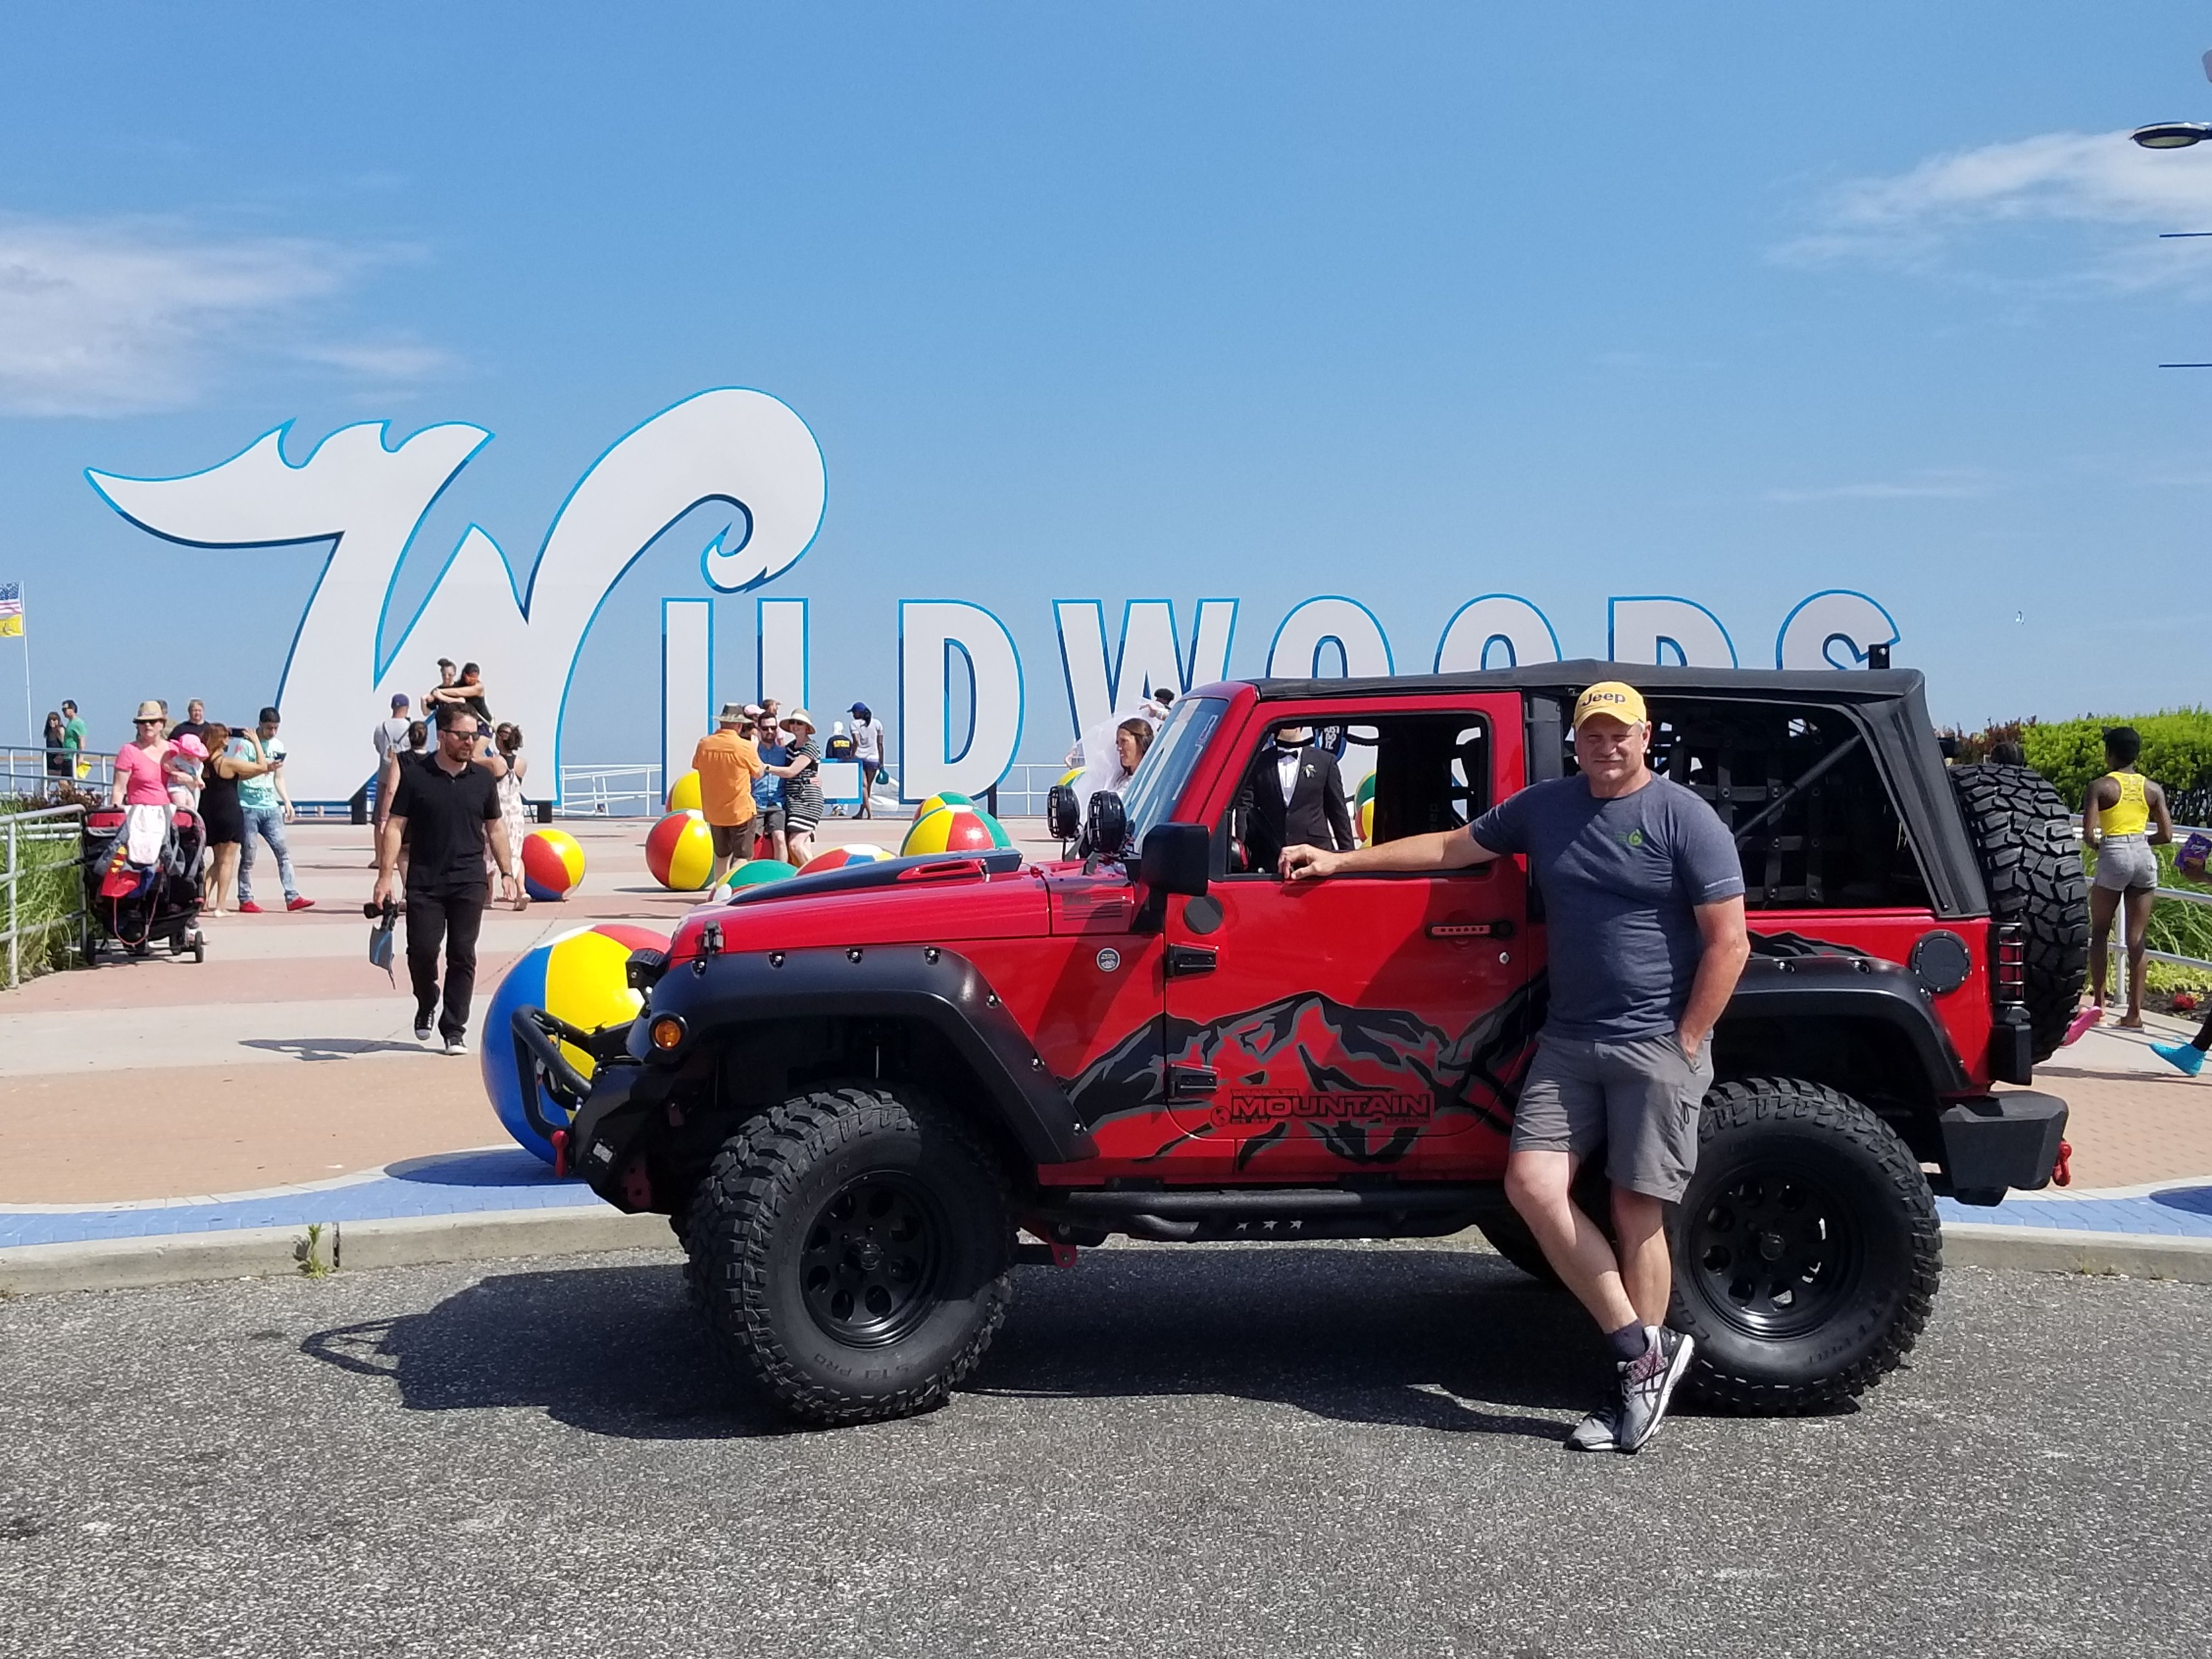 2017 Nj Jeep Invasion Wildwood Nj Jeep Wildwood Nj Monster Trucks